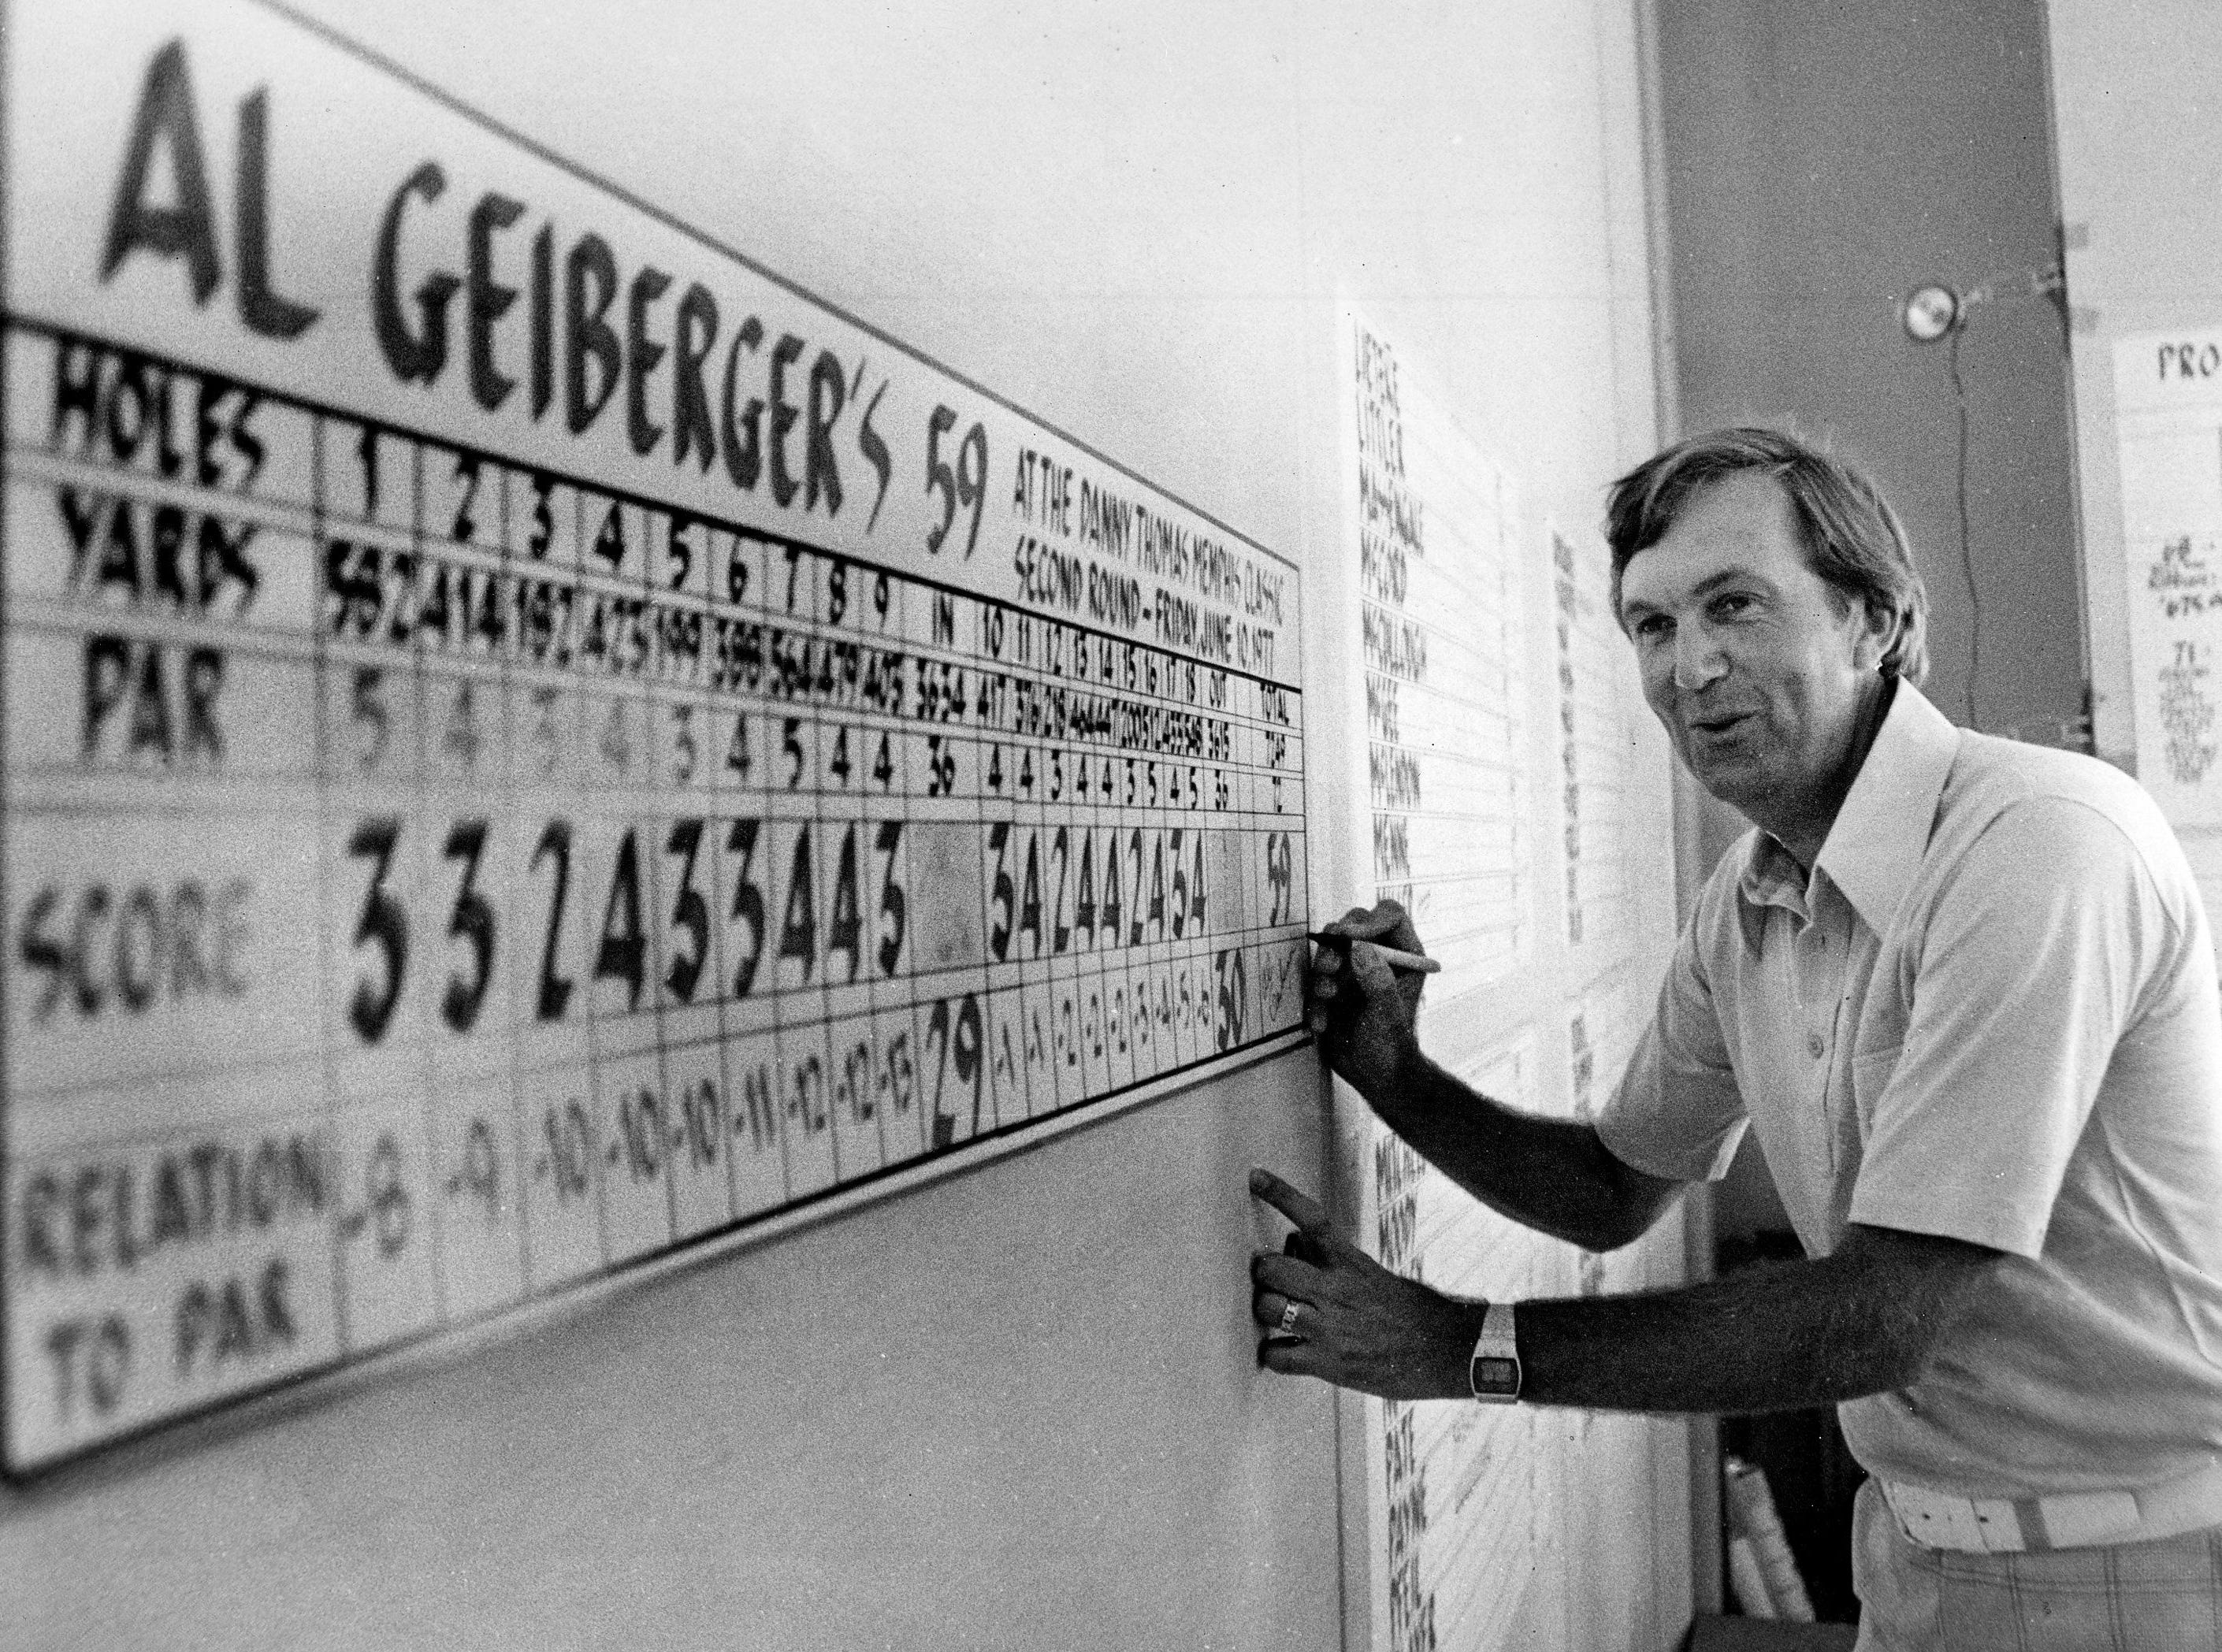 Al Geiberger signs a giant replica of his scorecard after shooting 59 during the second round of the Danny Thomas Memphis Classic at Colonial Country Club's south course on June 11, 1977. Person won the tournament in 1968 and 1969.